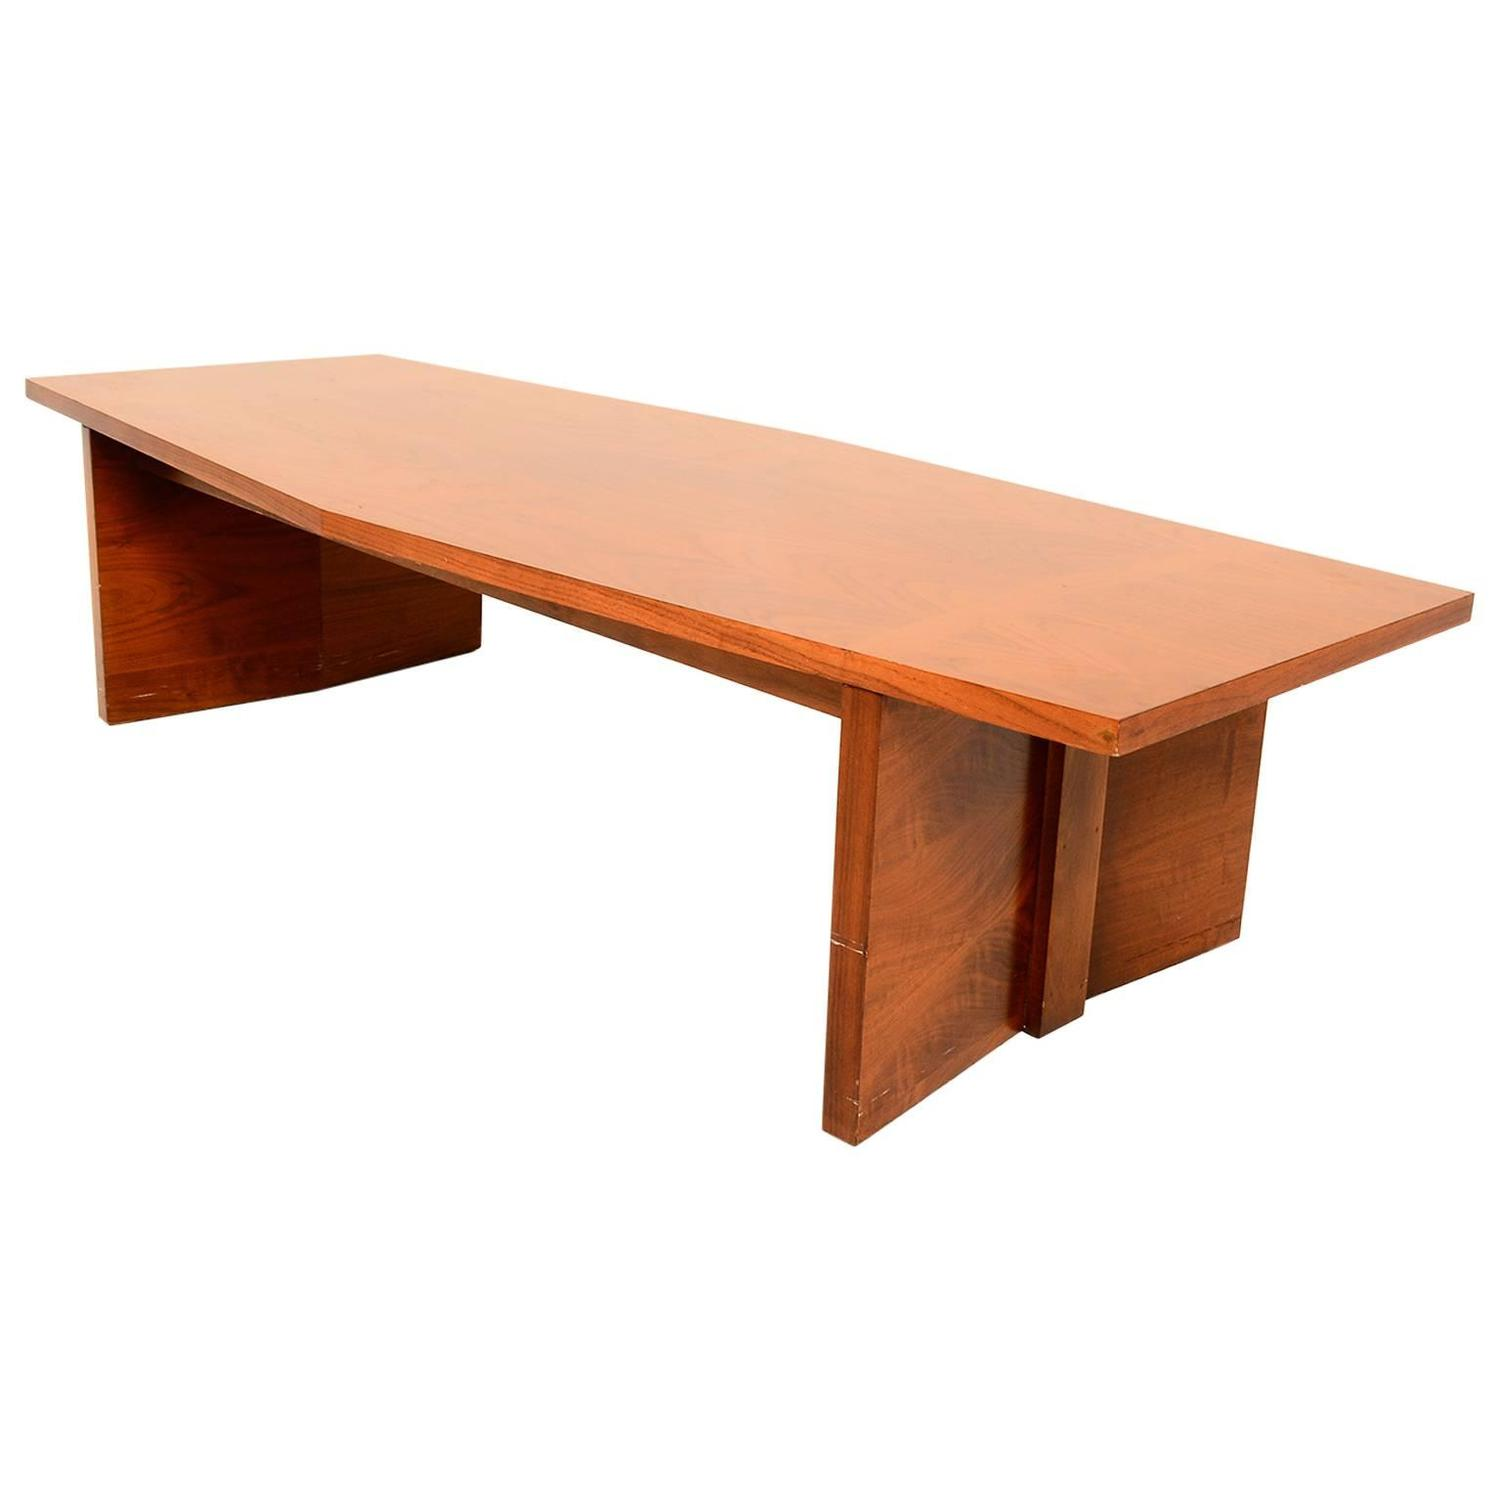 Lane Blonde Coffee Table: Rare Mid-Century Modern Lane Coffee Table For Sale At 1stdibs